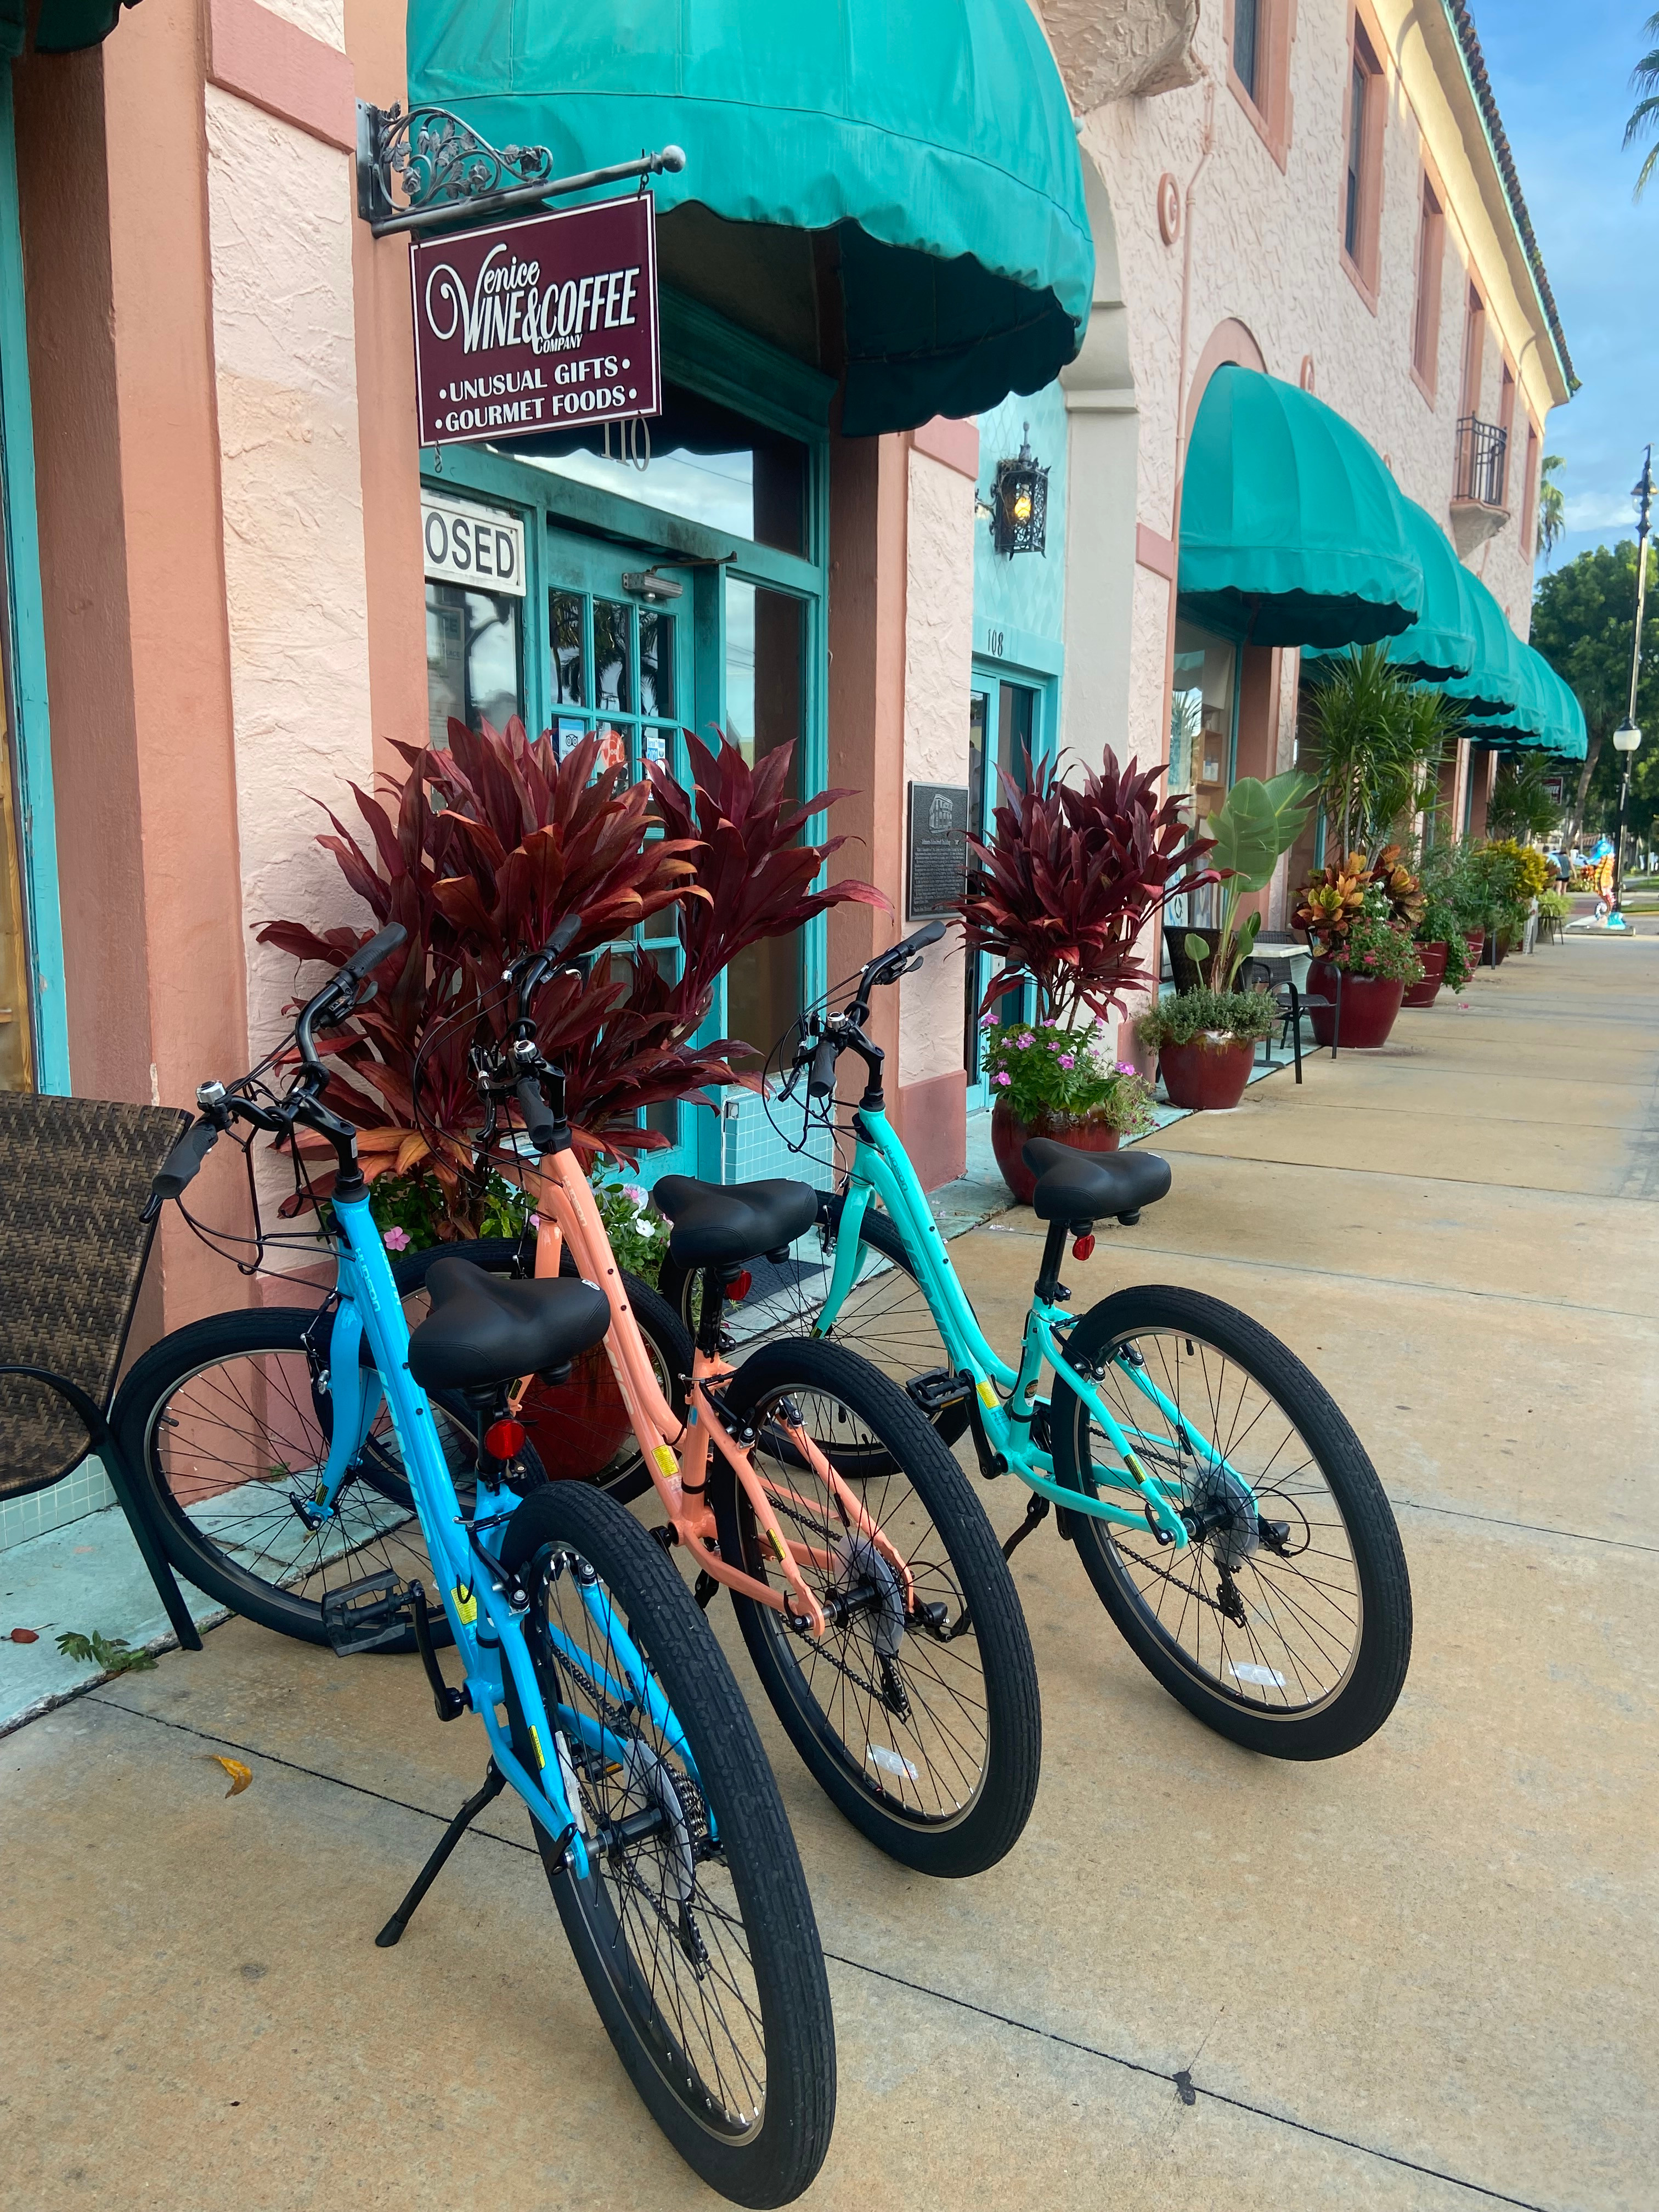 Venice Bicycle Tours - bike included